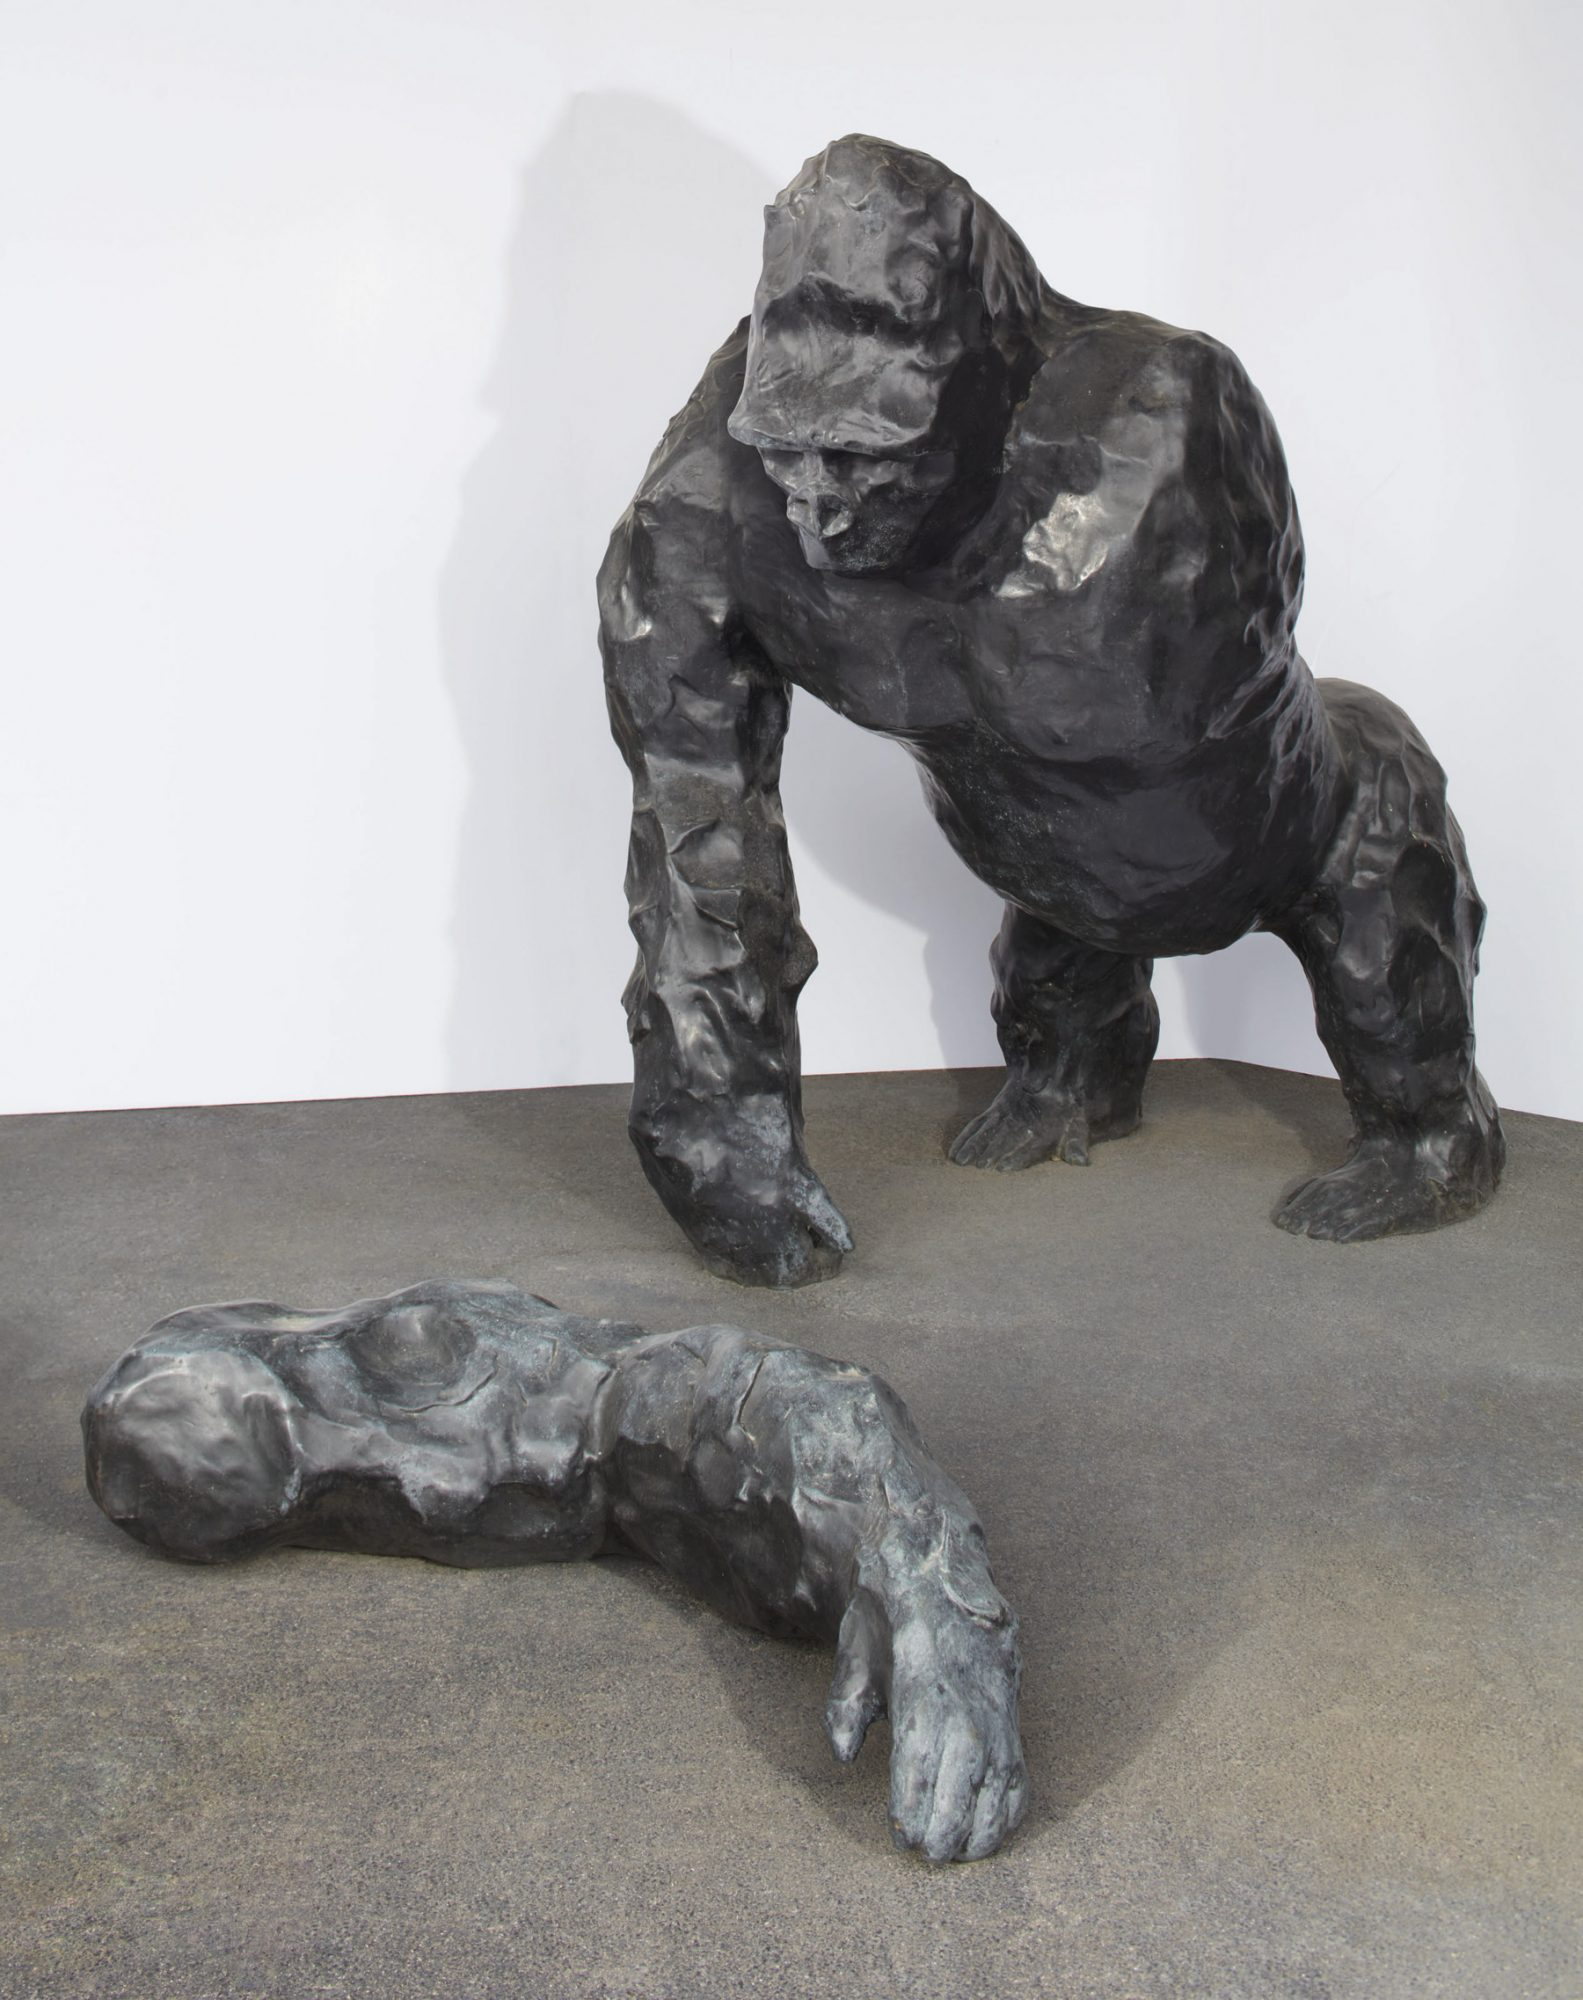 Lot 20 - Angus Fairhurst, A Couple of Differences Between Thinking and Feeling II